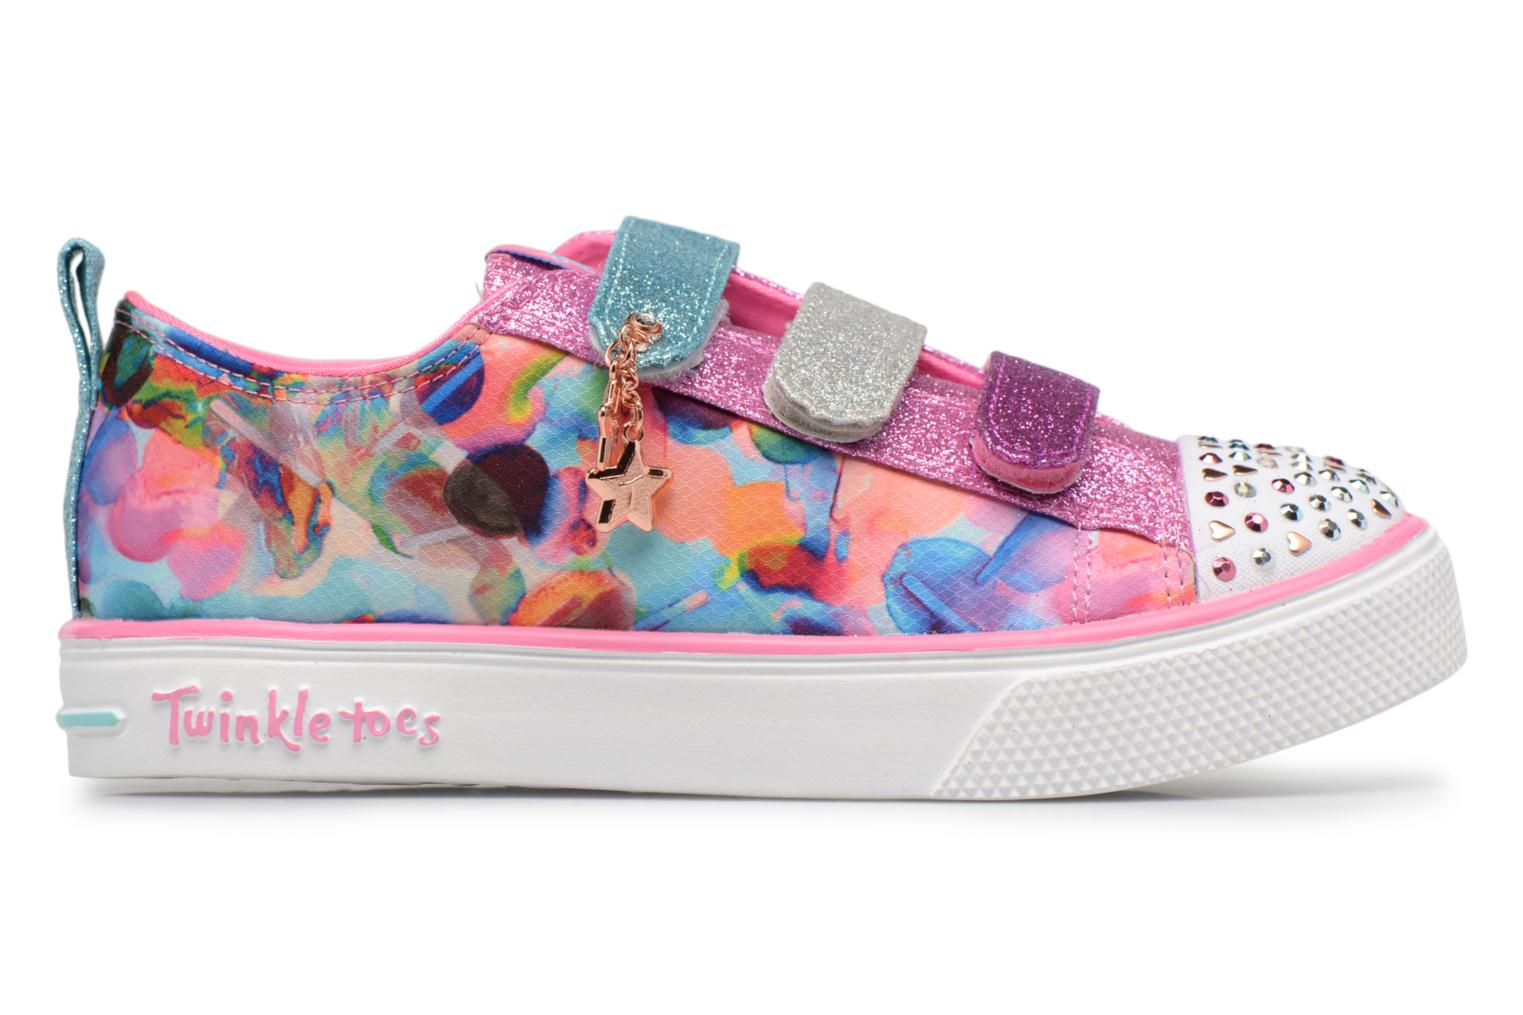 Baskets Skechers Twinkle Breeze 2.0 Triple Ups Multicolore vue derrière